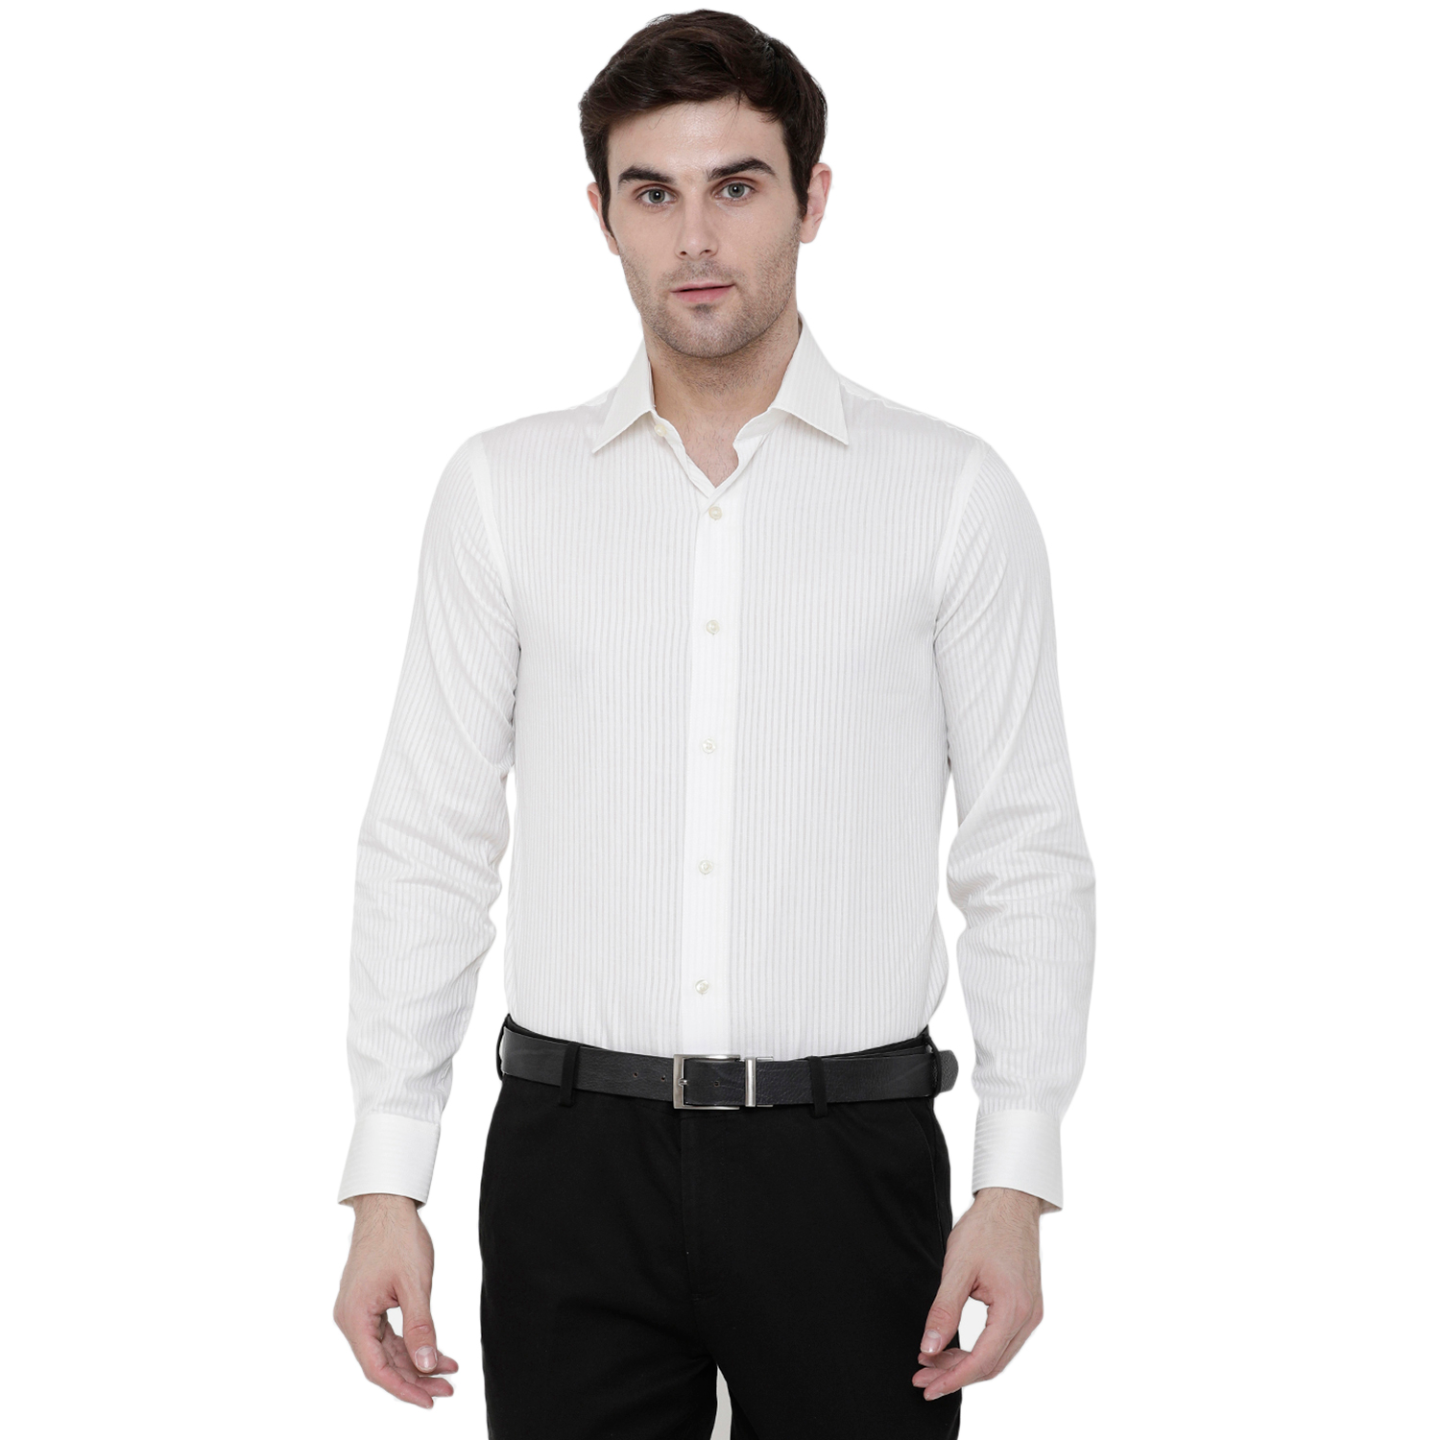 Double TWO Creem White Solid Formal Shirt